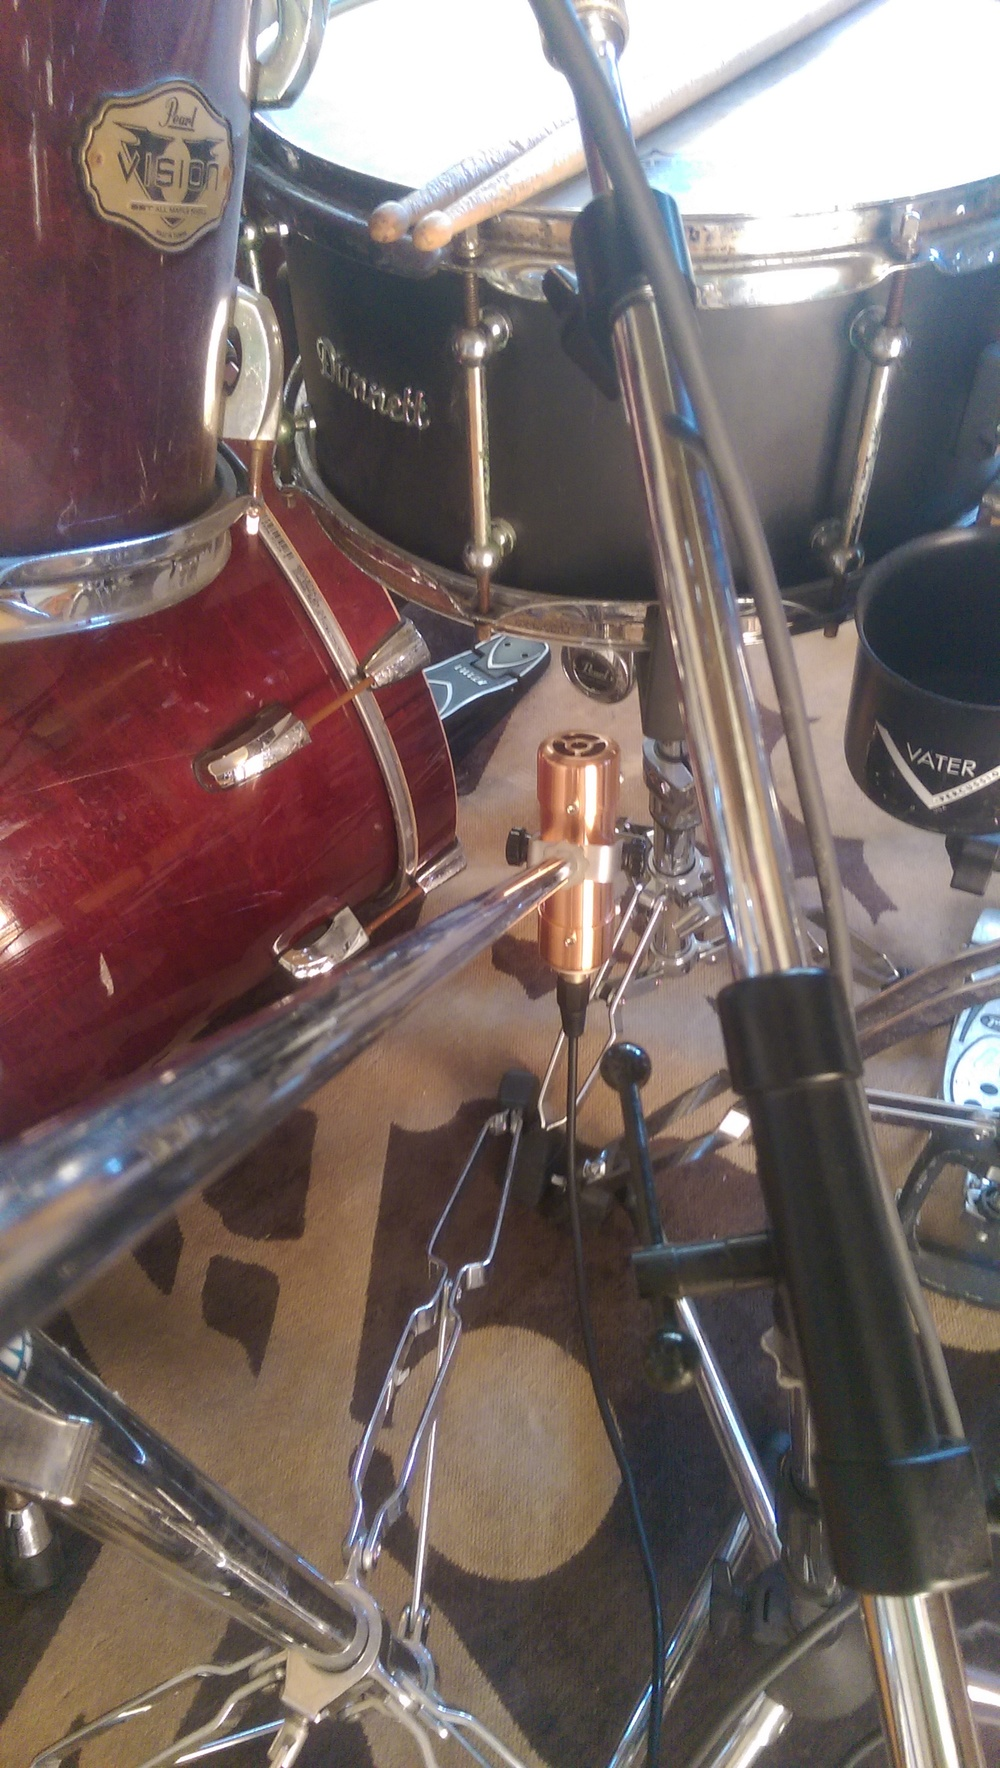 Carbonphone below snare